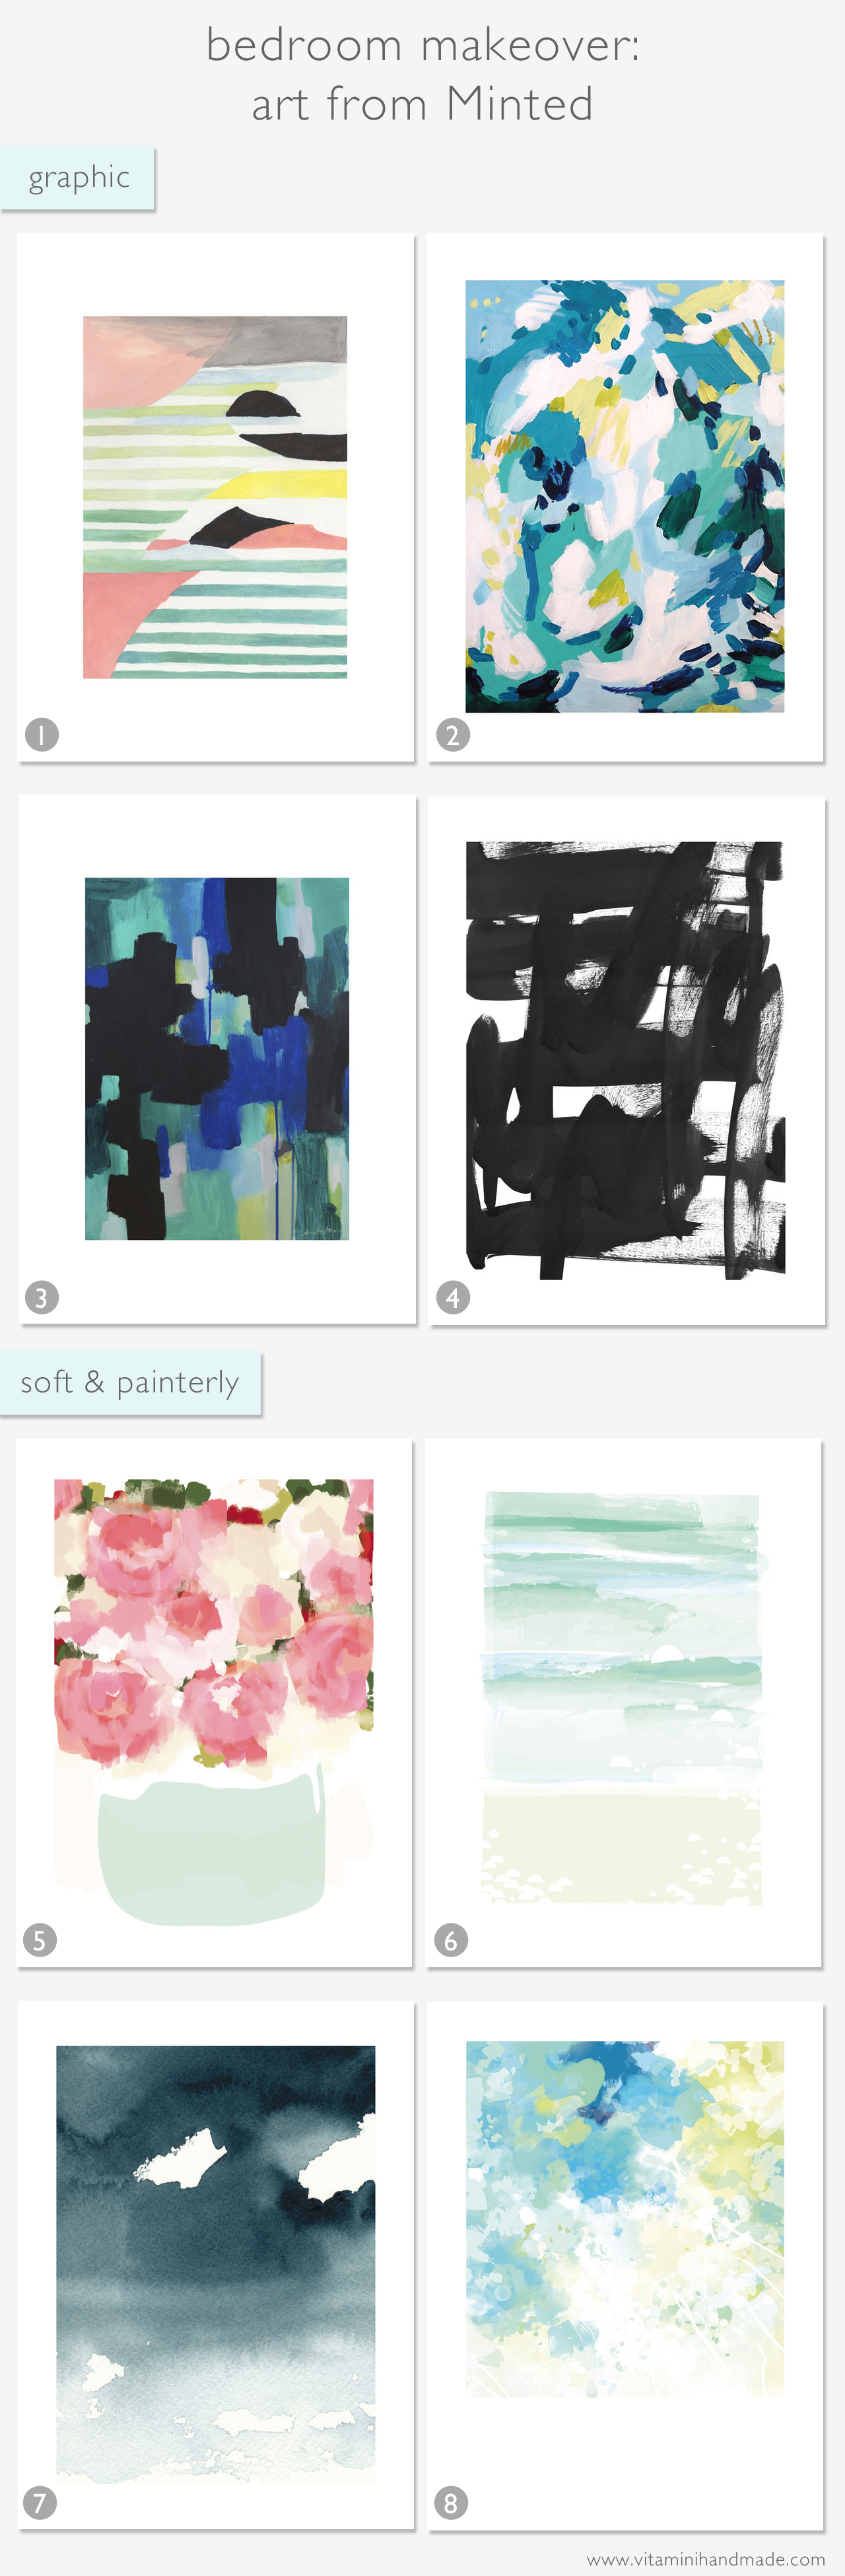 Bedroom Makeover: Art from Minted